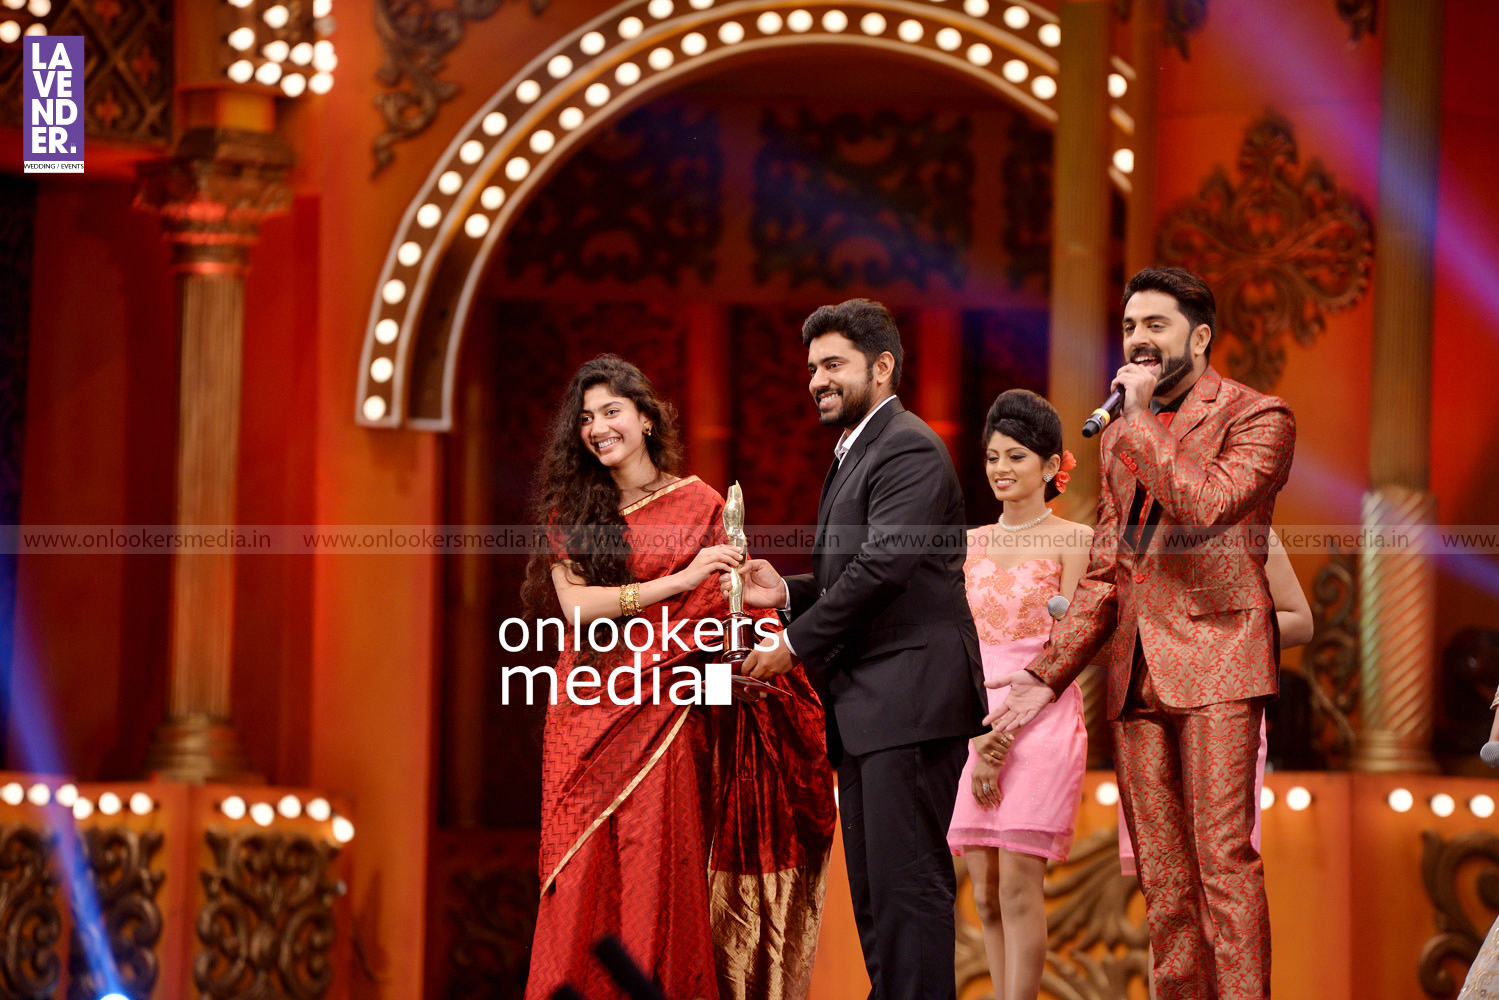 http://onlookersmedia.in/wp-content/uploads/2016/02/Nivin-Pauly-at-Asianet-Film-Award-2016-36.jpg